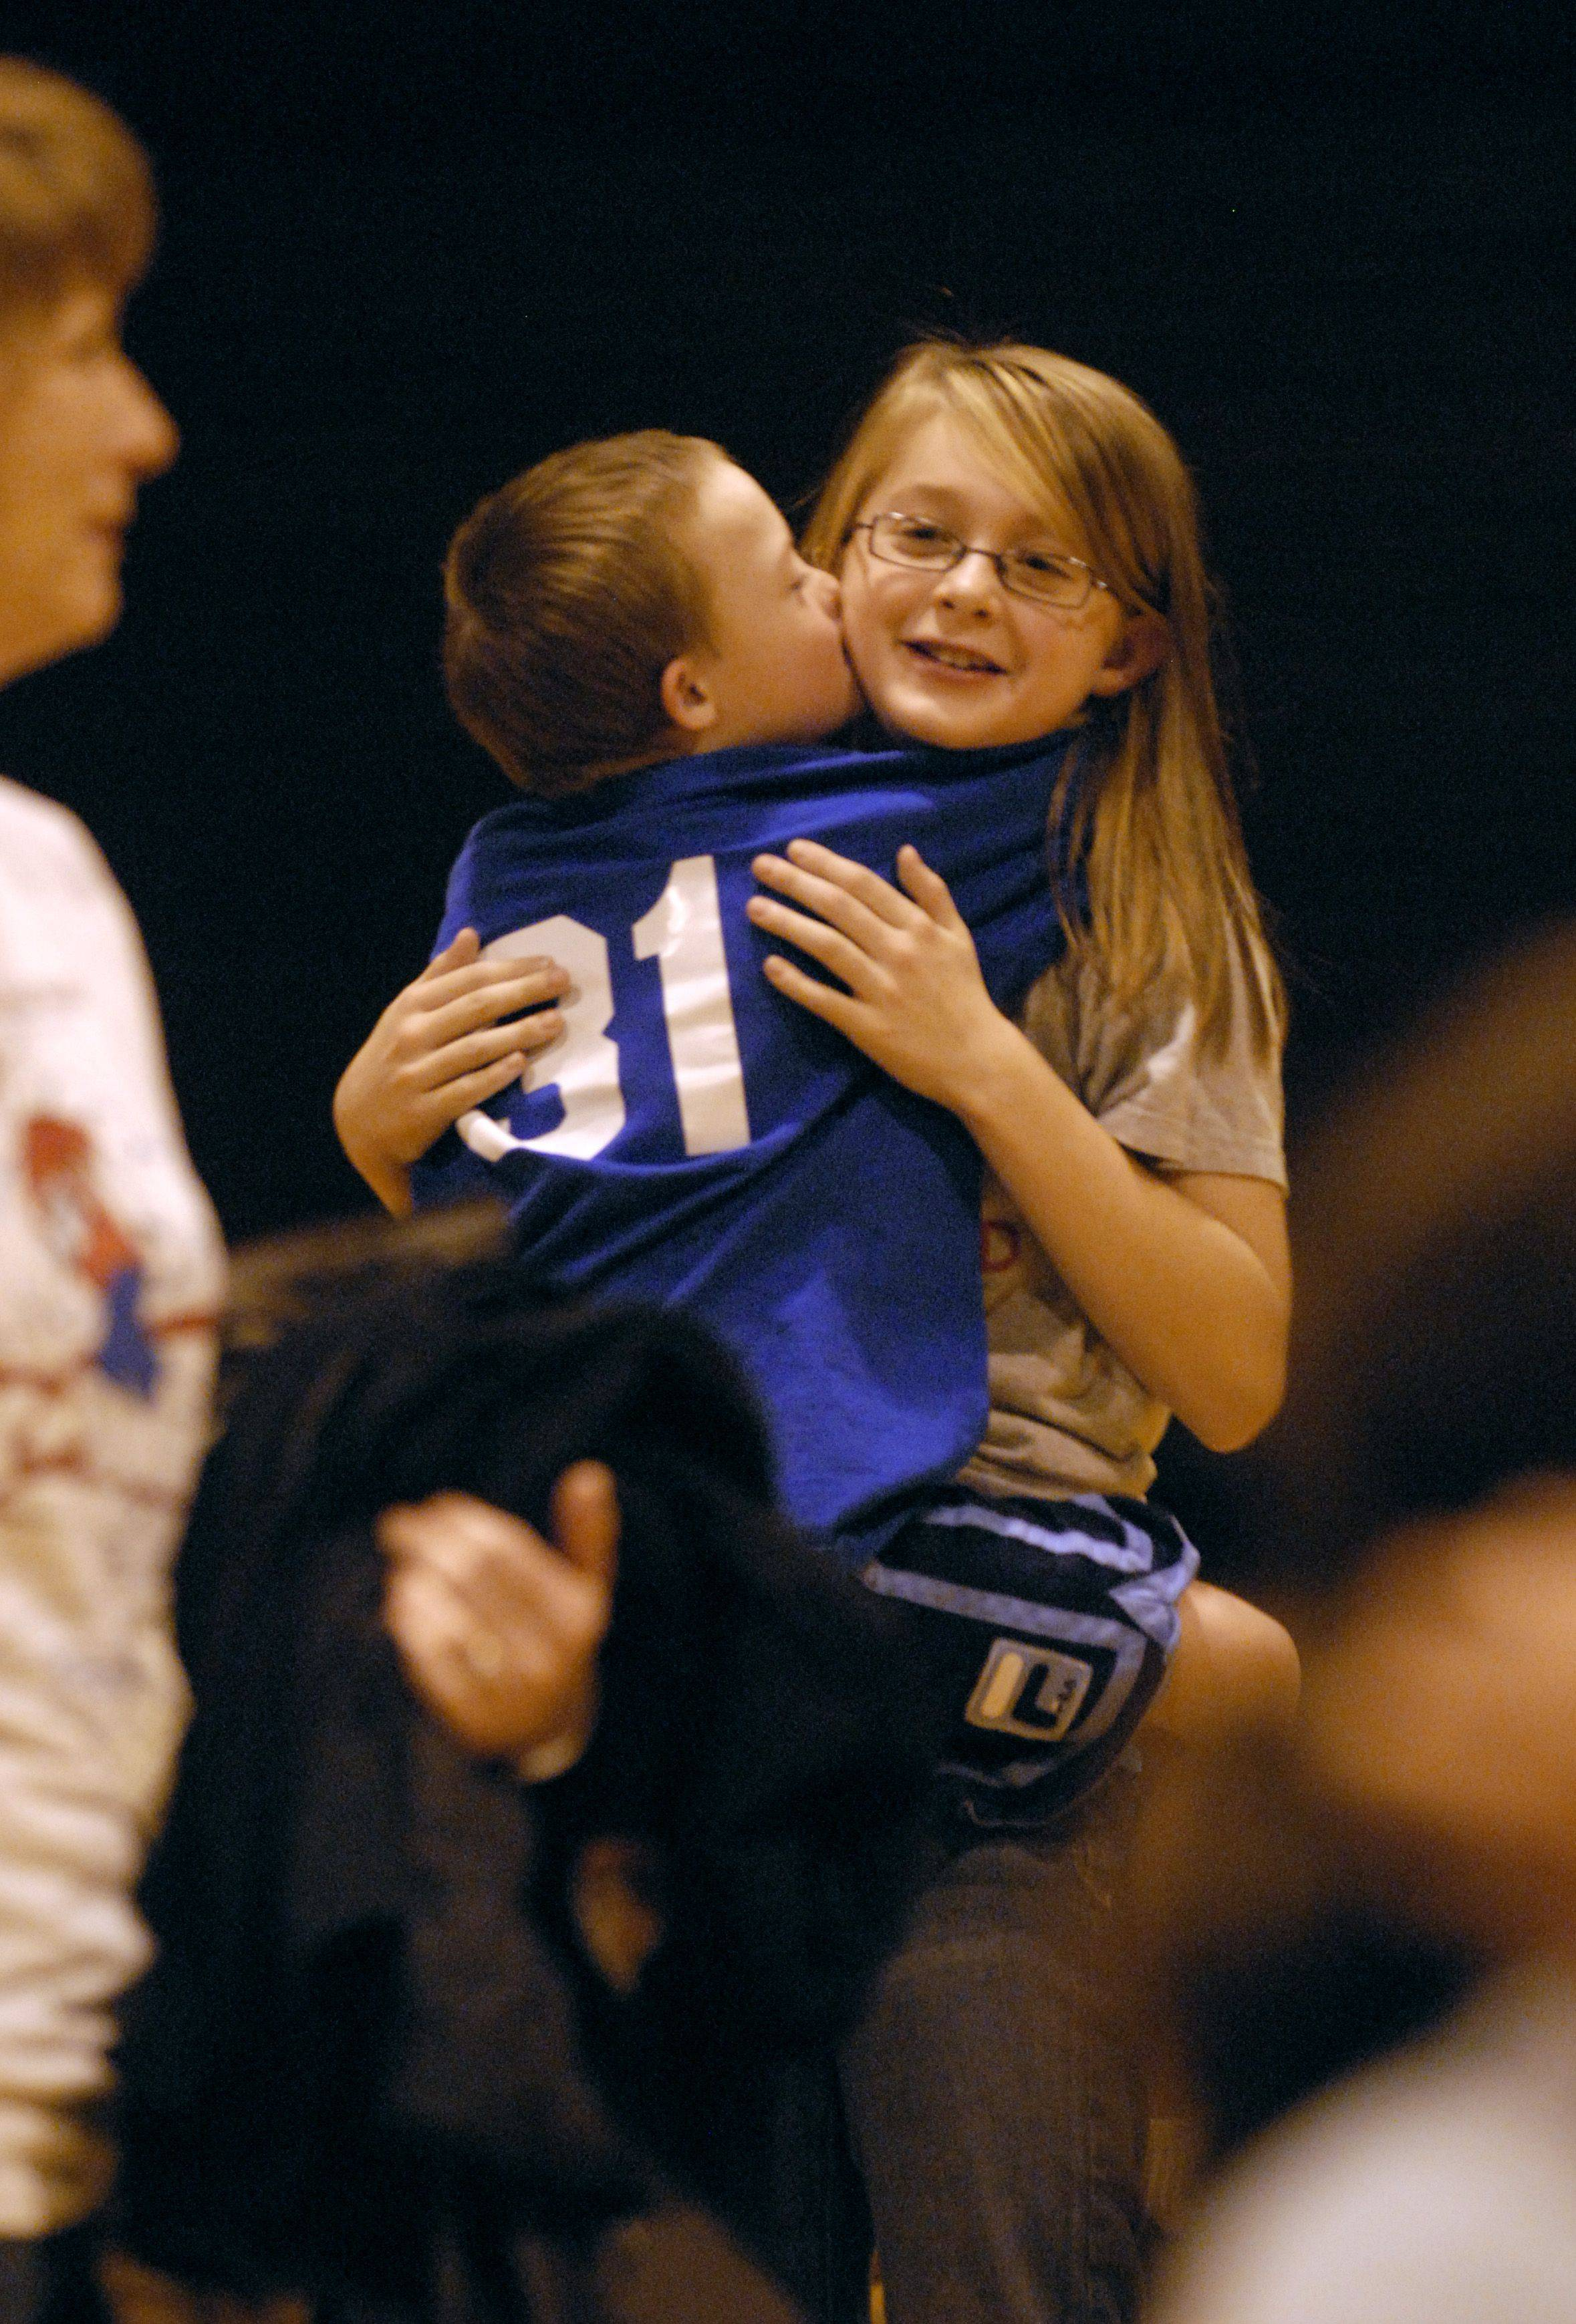 Special Olympics teammates Braden Graves, 9, hugs and kisses his older sister, Kylie Graves, 10, after the ceremony at the Gifford Street Alternative High School gym Thursday night in Elgin.